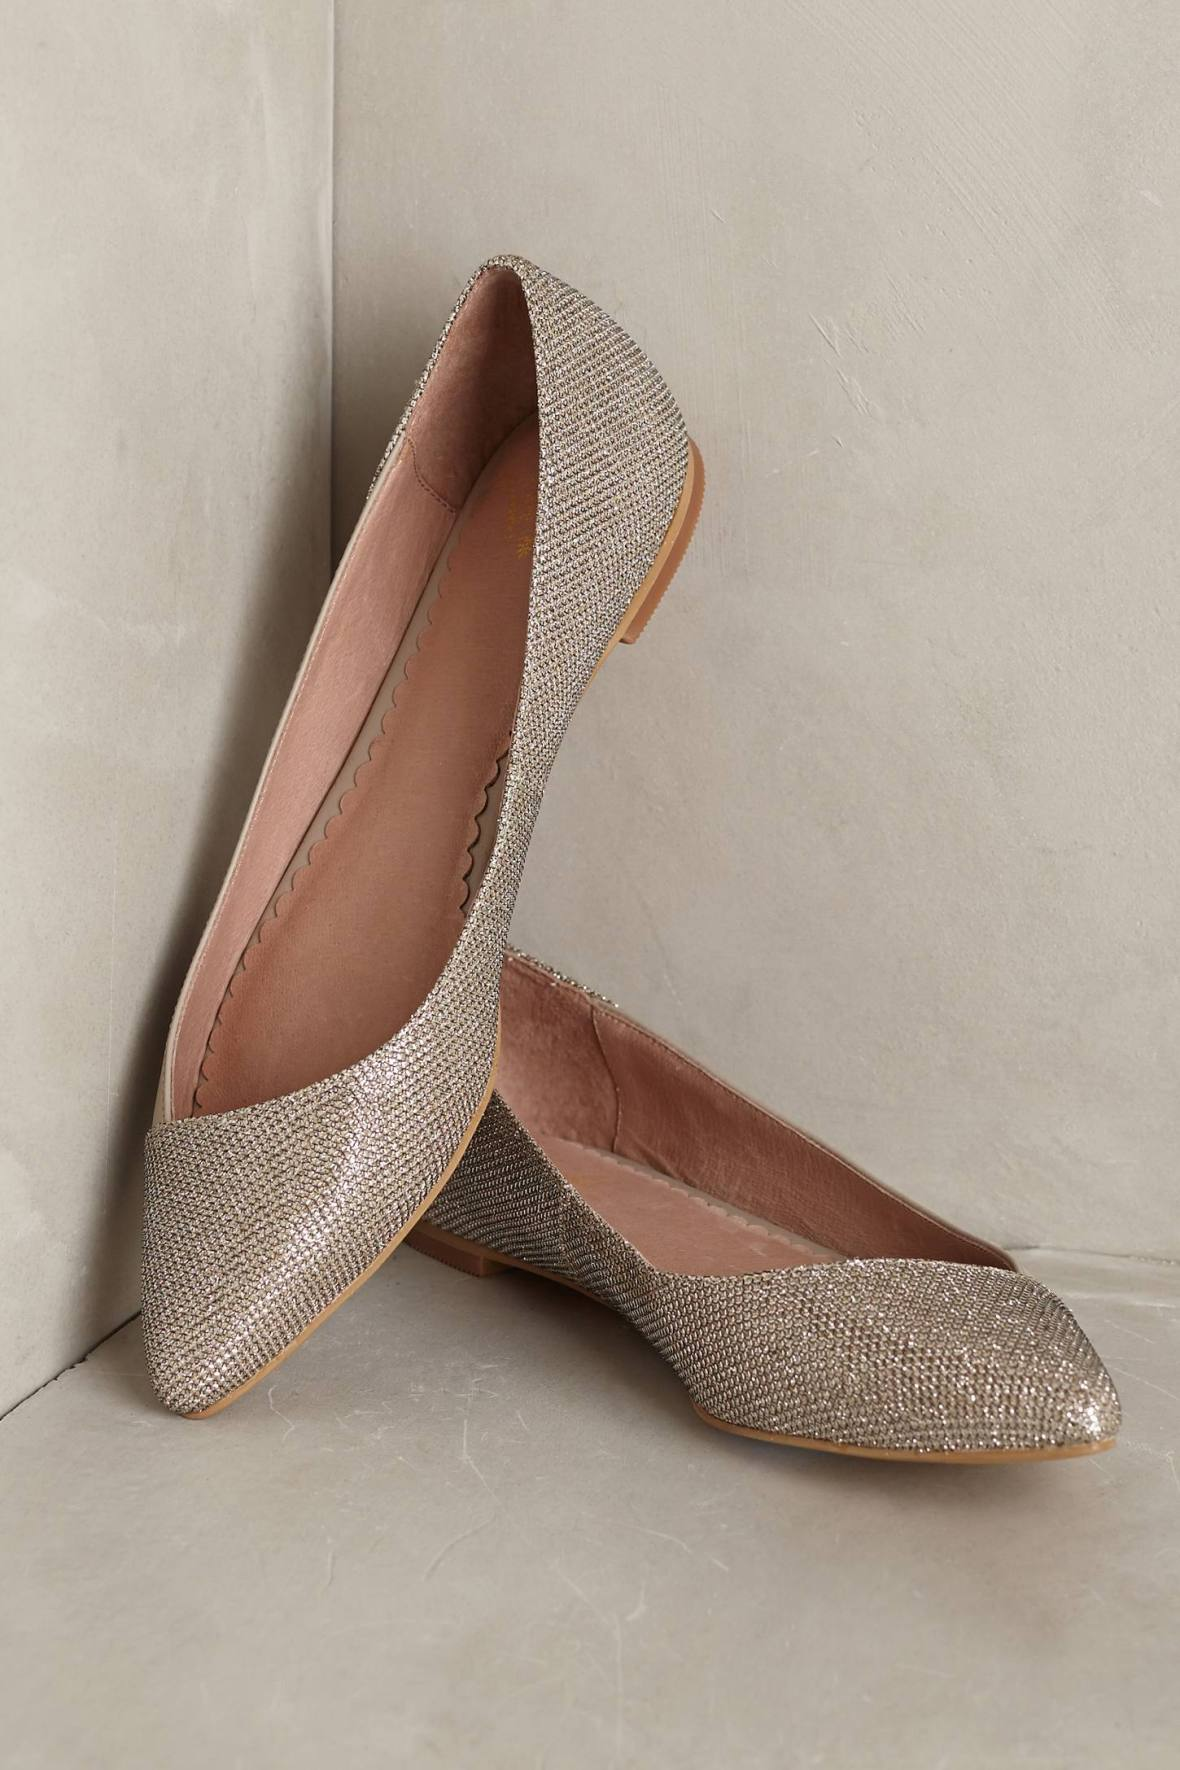 Anthropologie Albright flats